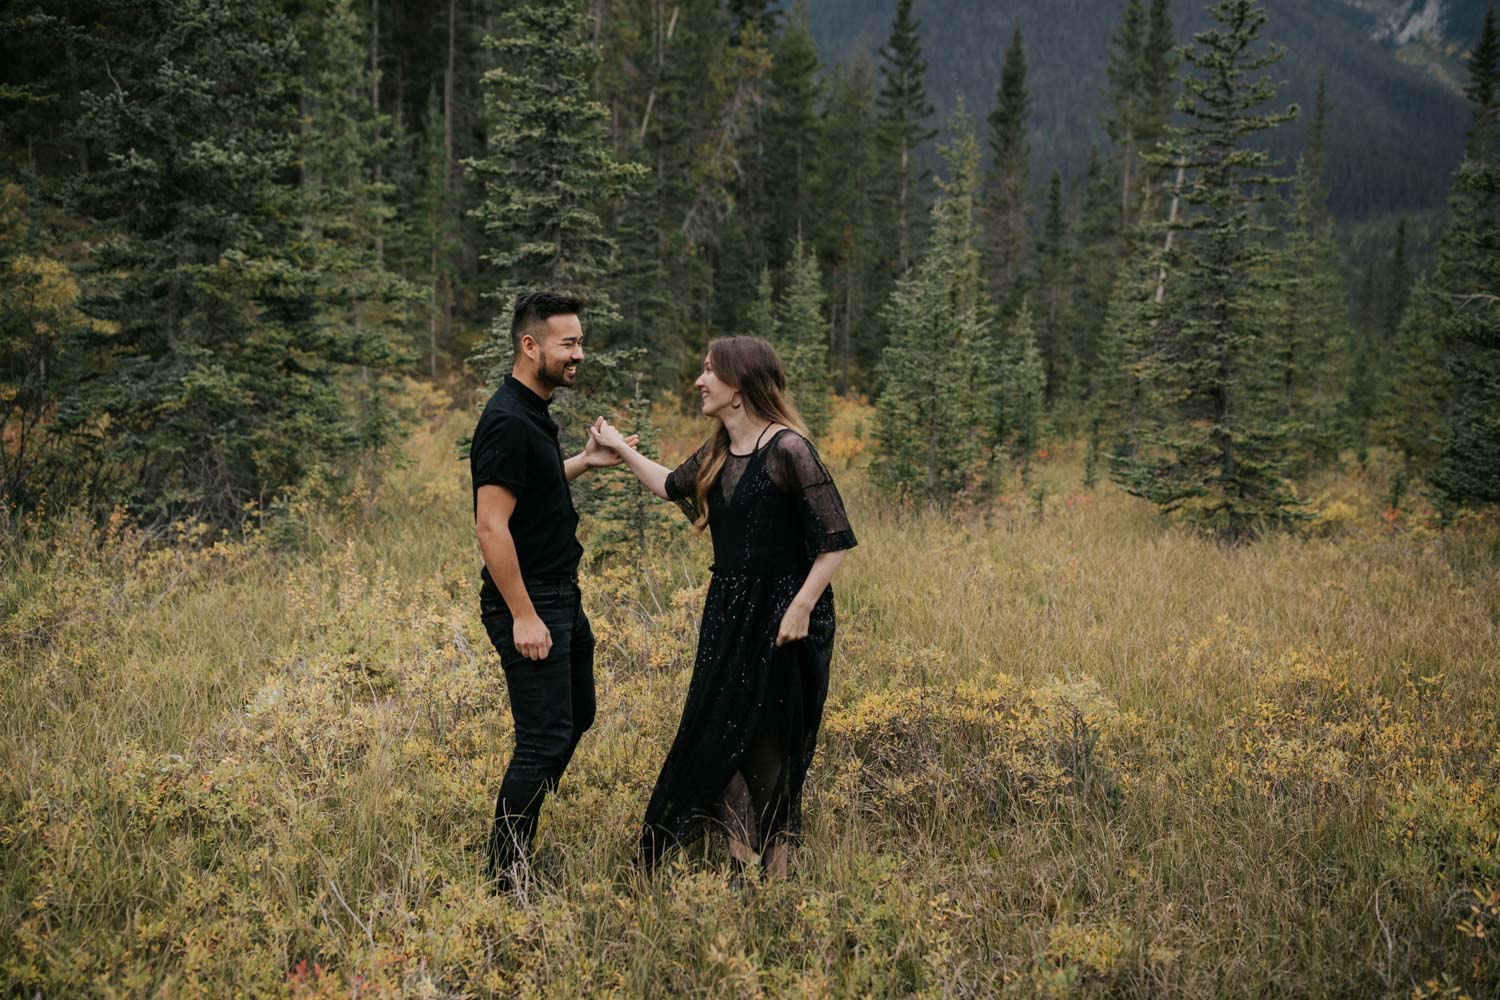 Engaged Hipster Alternative Couple Dancing In BC Forest And Yellow Field